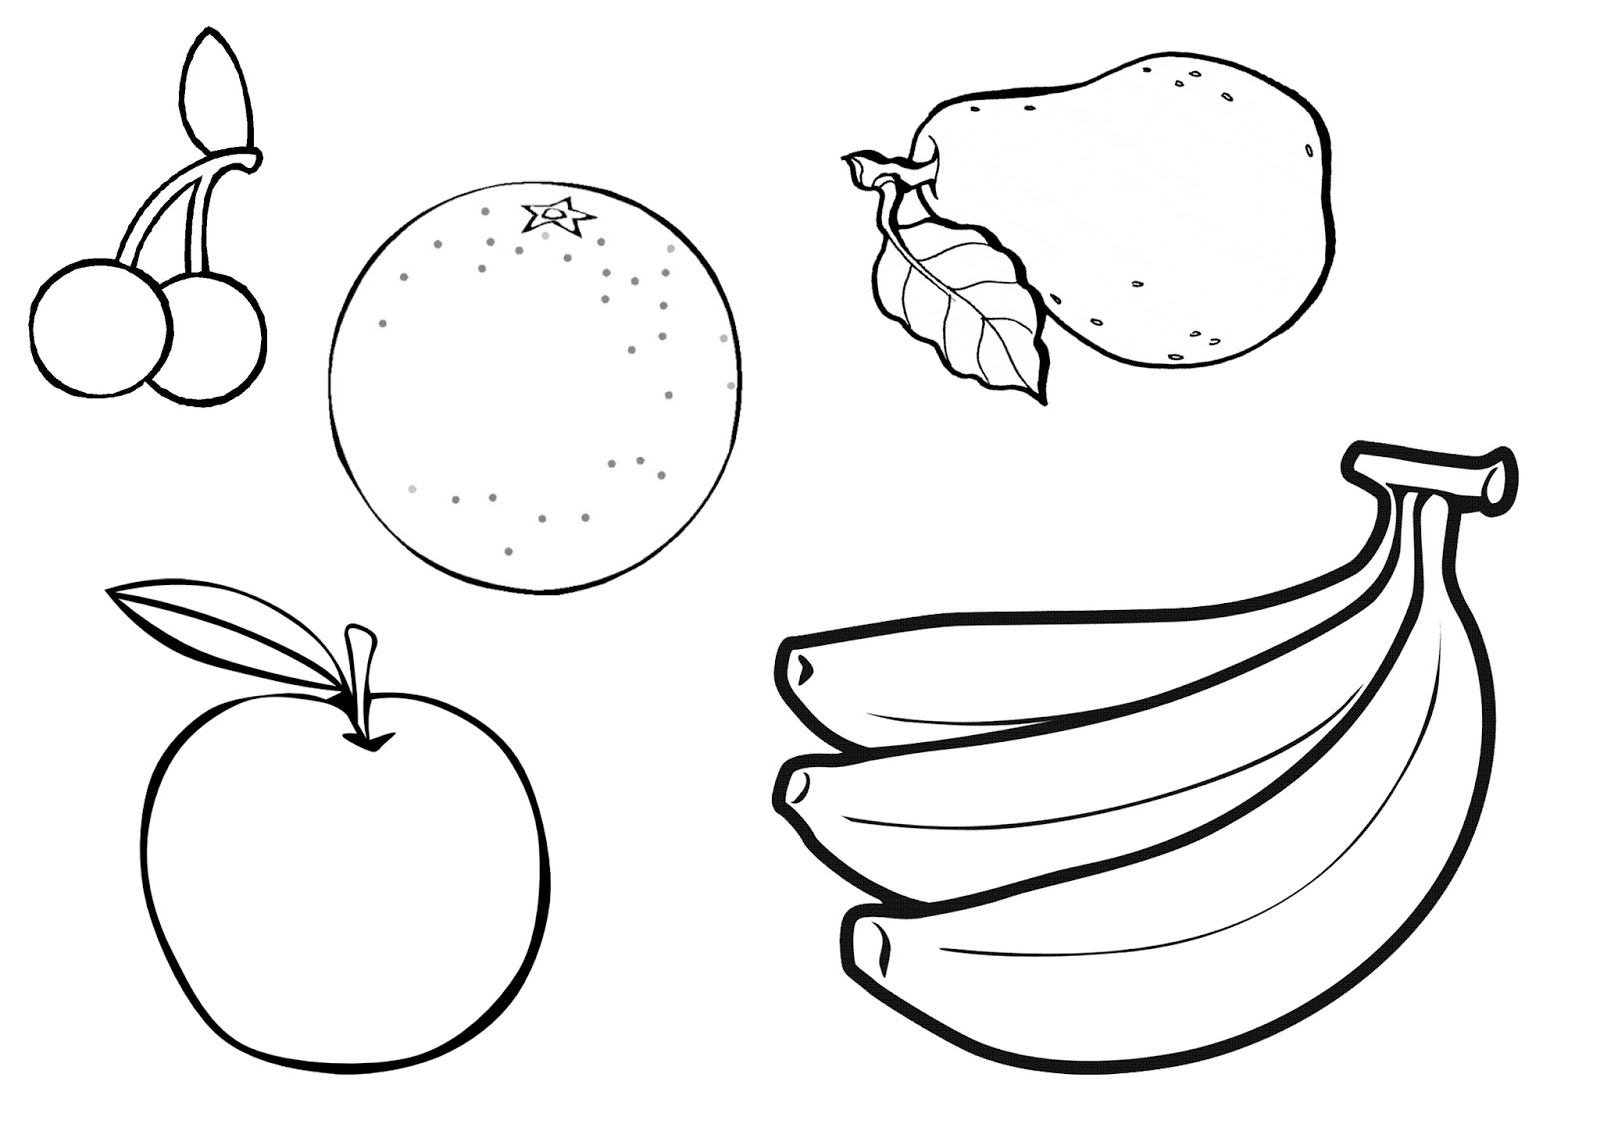 fruits drawings color art projects for kids esl fruit bowl fruits drawings color